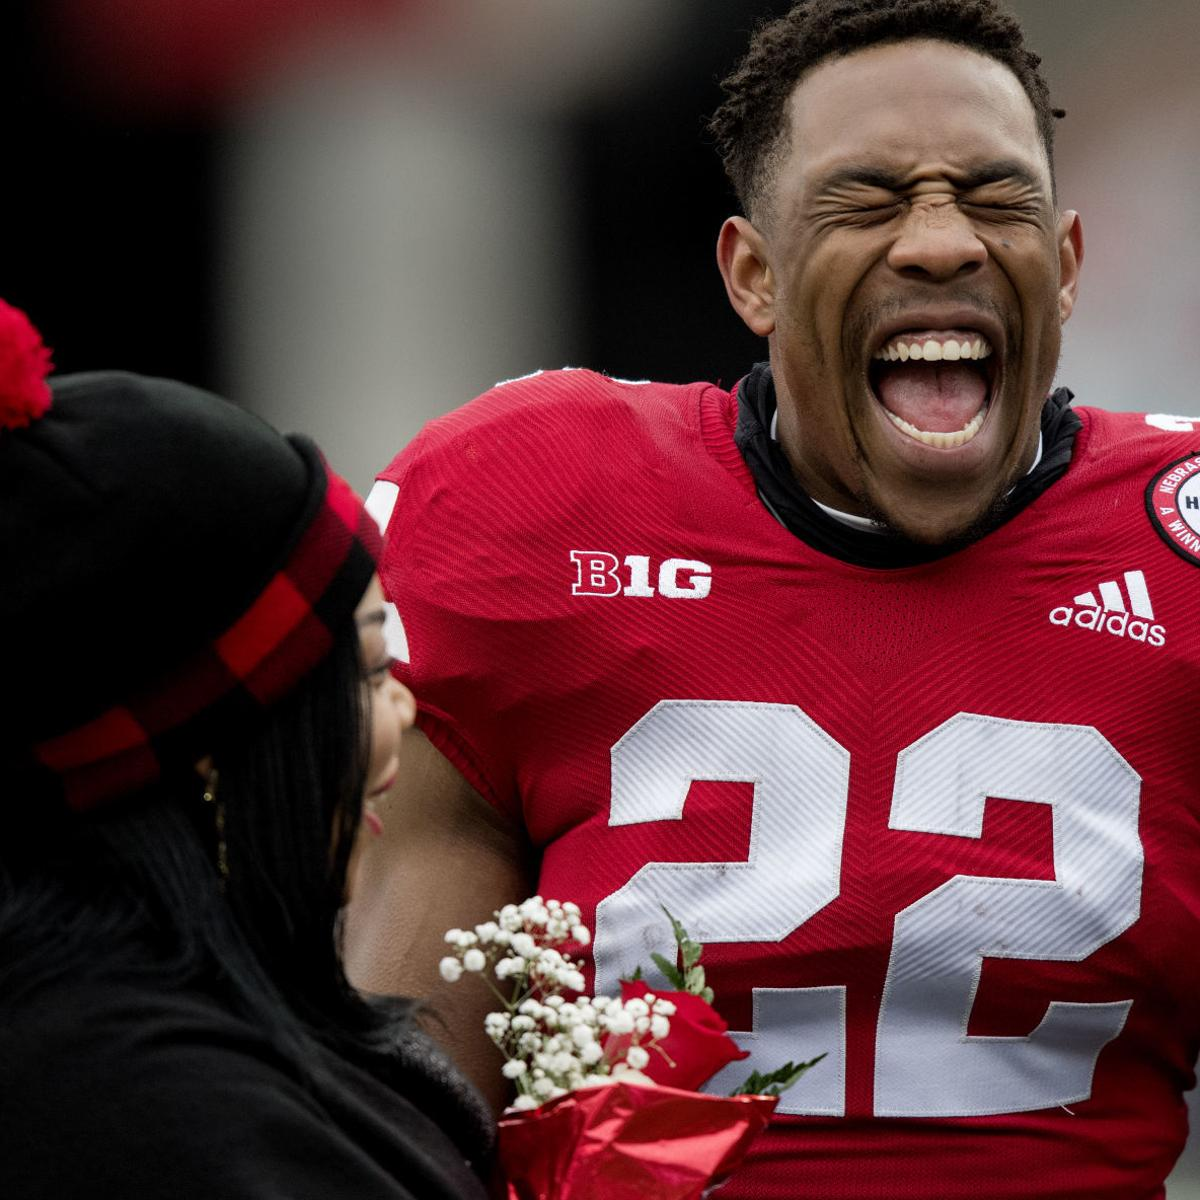 wholesale dealer 69c83 b15c0 Morgan, Ozigbo and Gifford lead list of Huskers to sign with ...